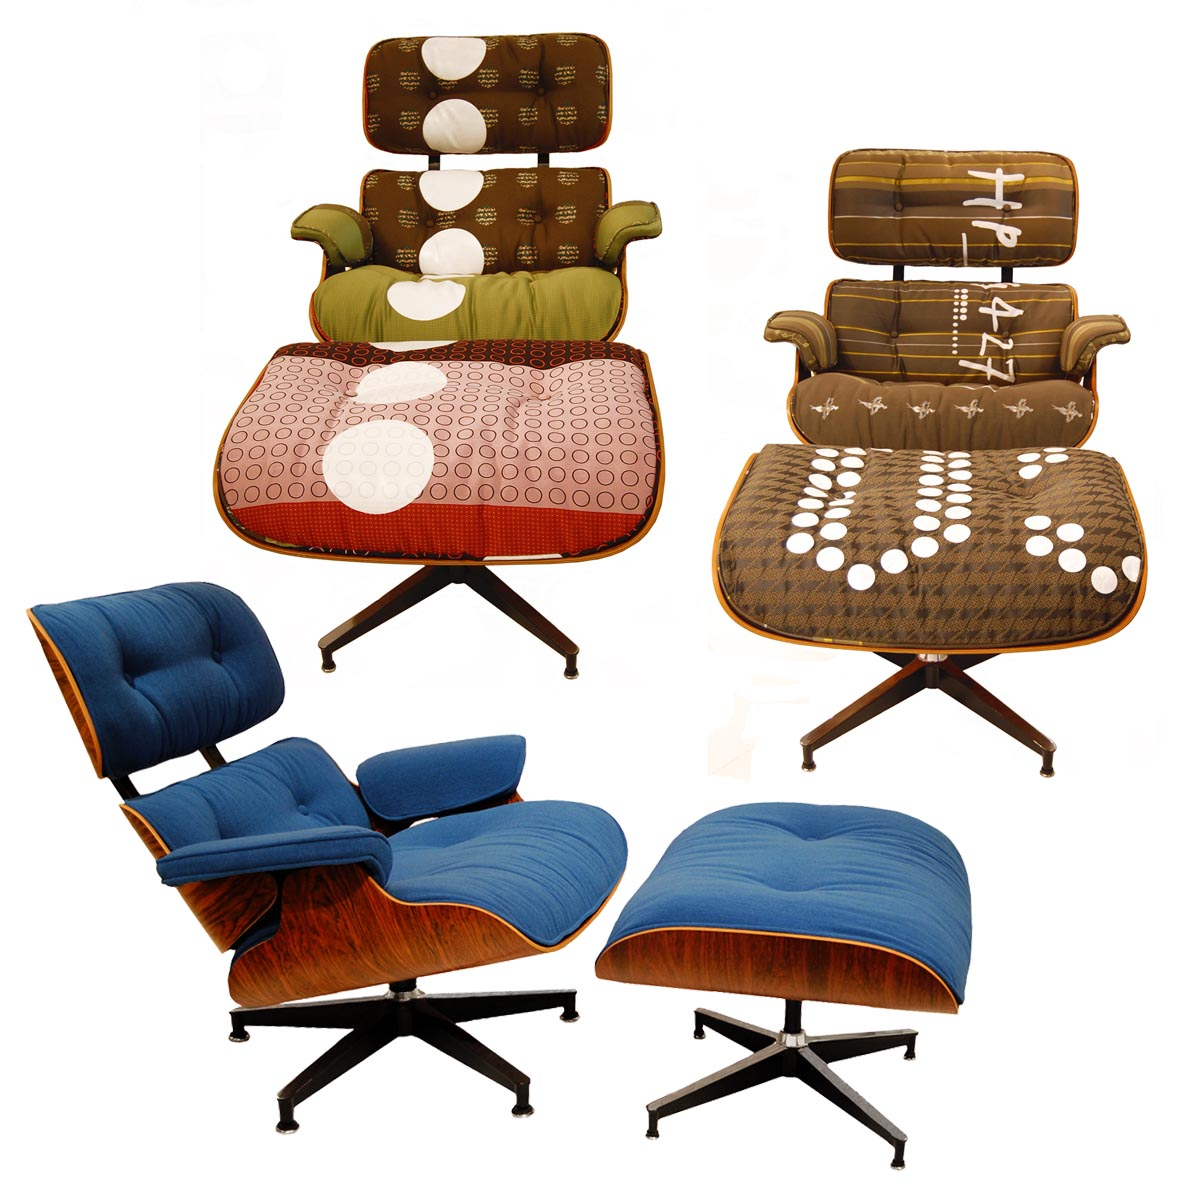 Eames Lounge Office Chair Vintage Eames Lounge Chairs Get Maharam Makeovers